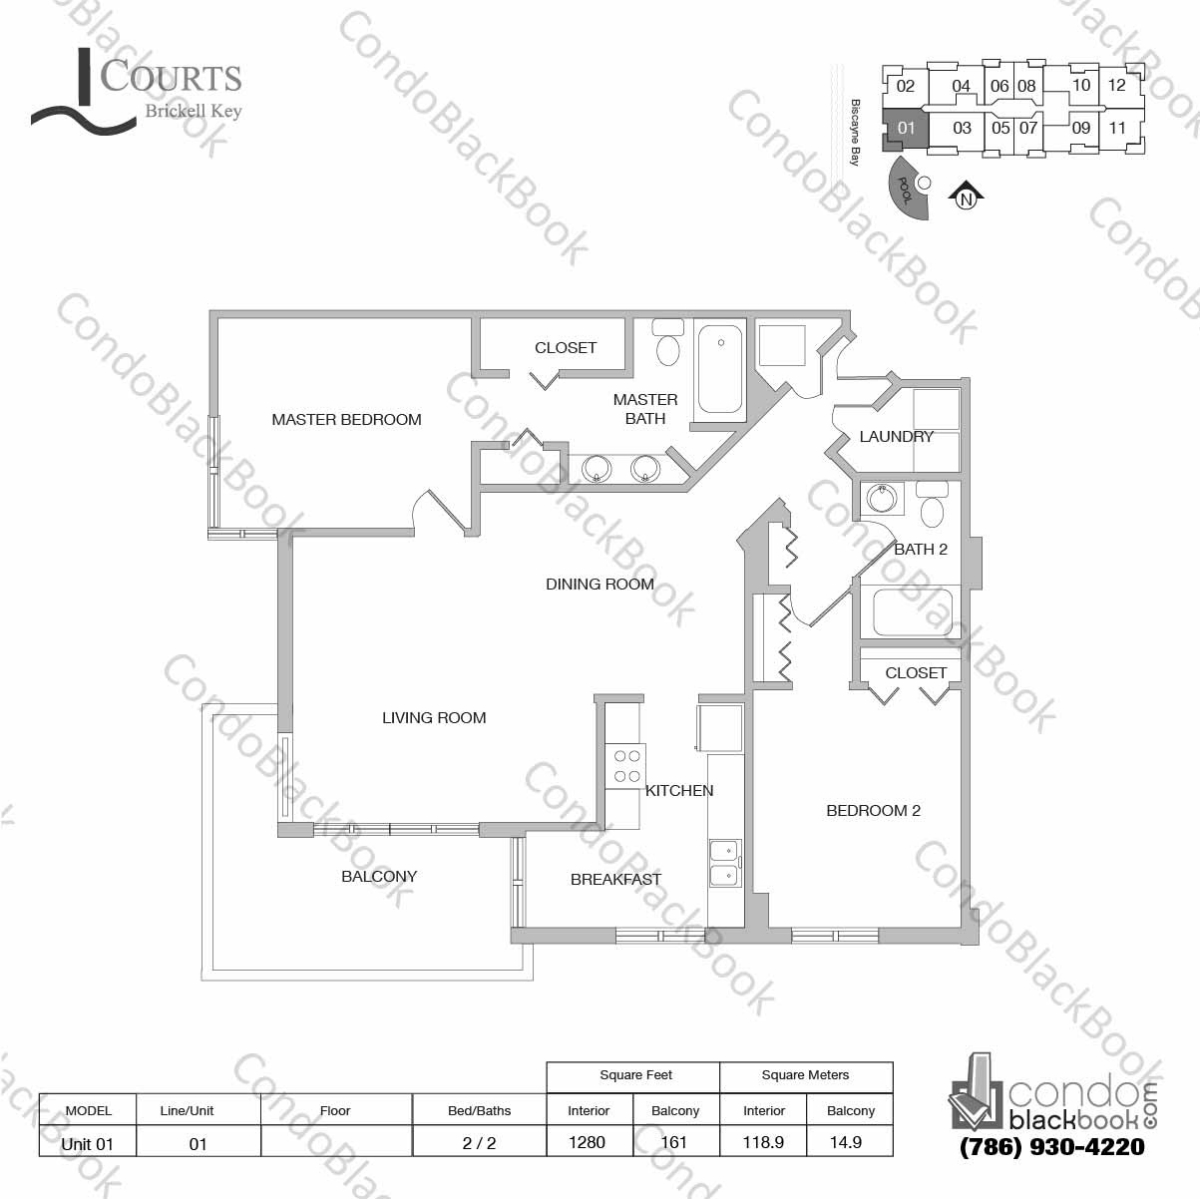 Floor plan for Courts Condo Brickell Key Brickell Key Miami, model Unit 01, line 01, 2 / 2 bedrooms, 1280 sq ft